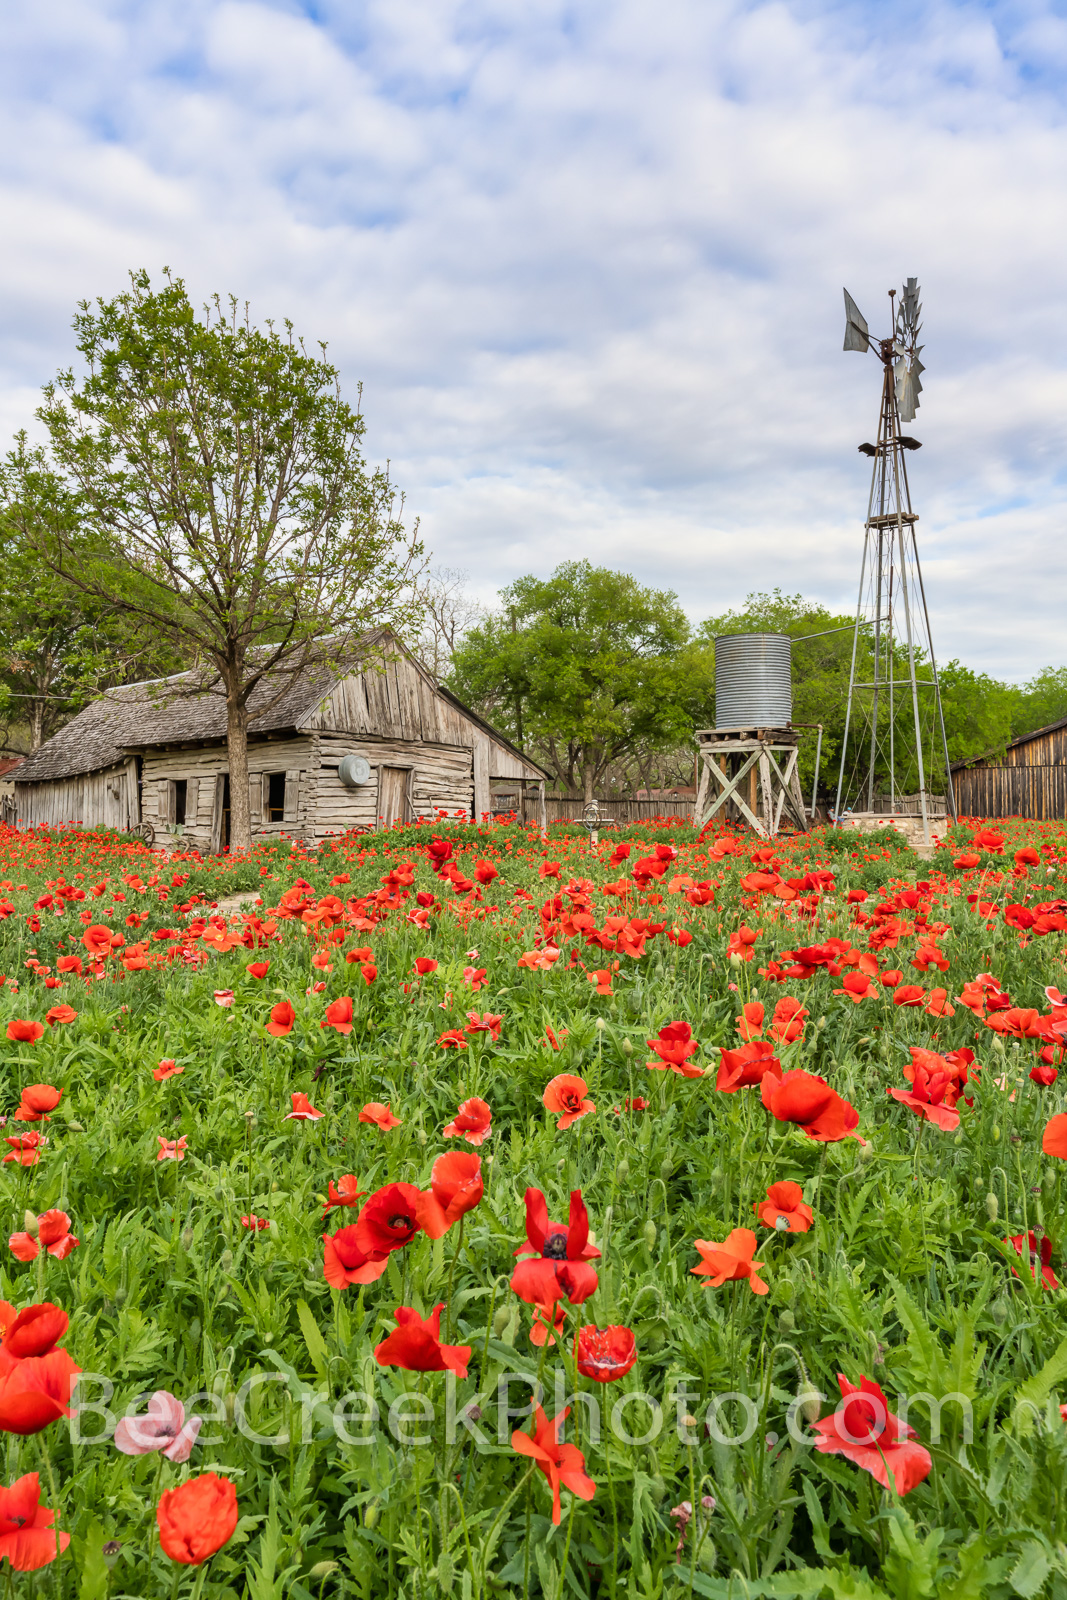 Poppies at the Farm Vertical - We capture these wonderful red corn poppies at this old rural farm where the poppy grow like wildflowers...